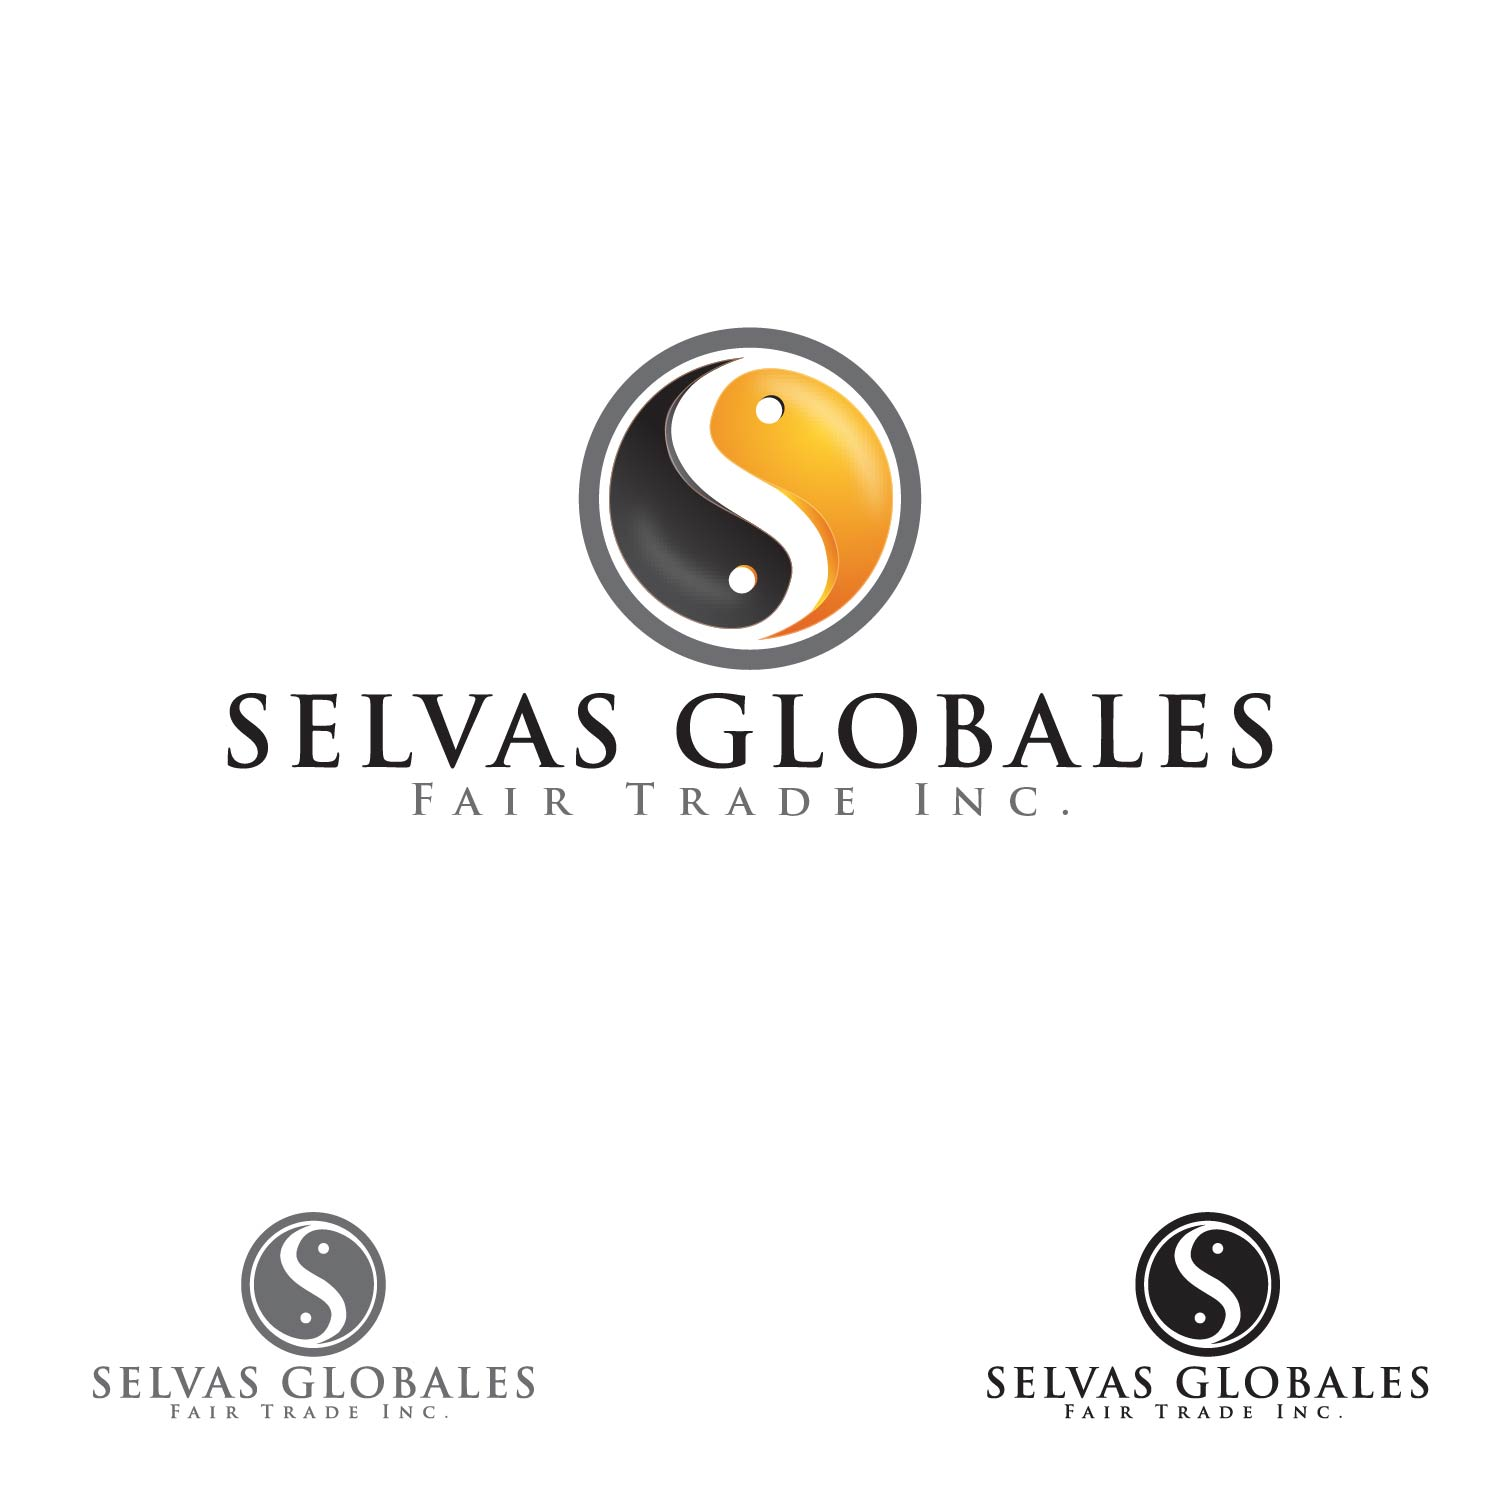 Logo Design by lagalag - Entry No. 19 in the Logo Design Contest Captivating Logo Design for Selvas Globales Fair Trade Inc..